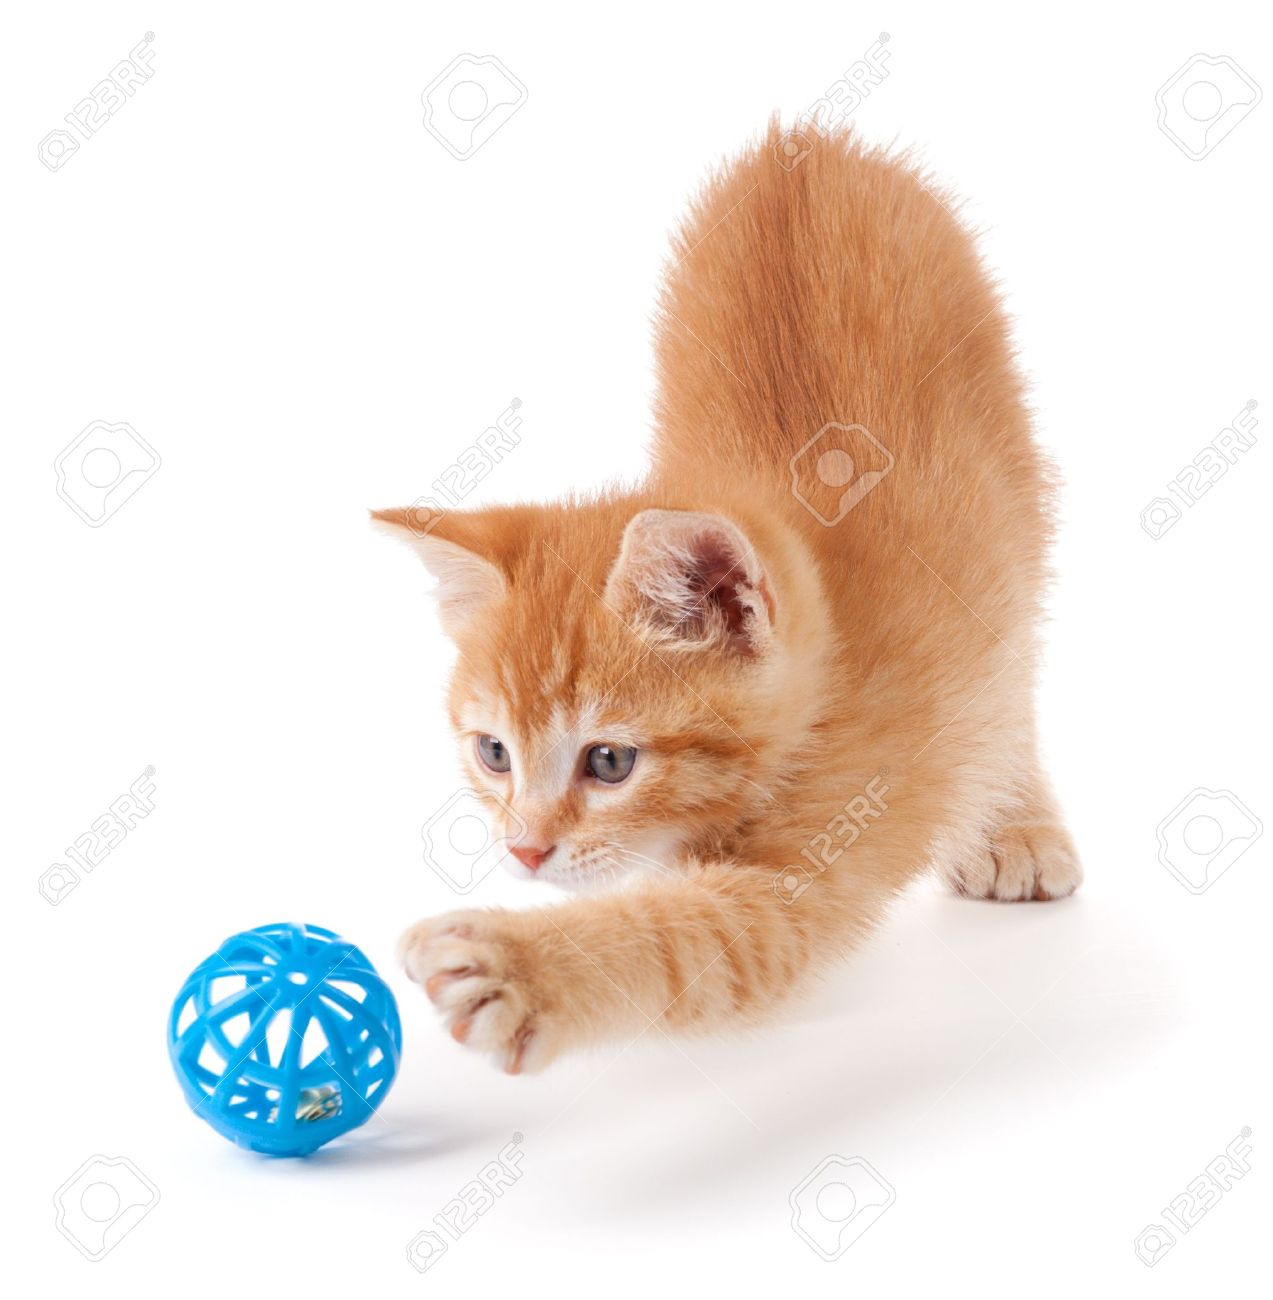 Cute Orange Kitten With Paws Playing With A Toy Stock